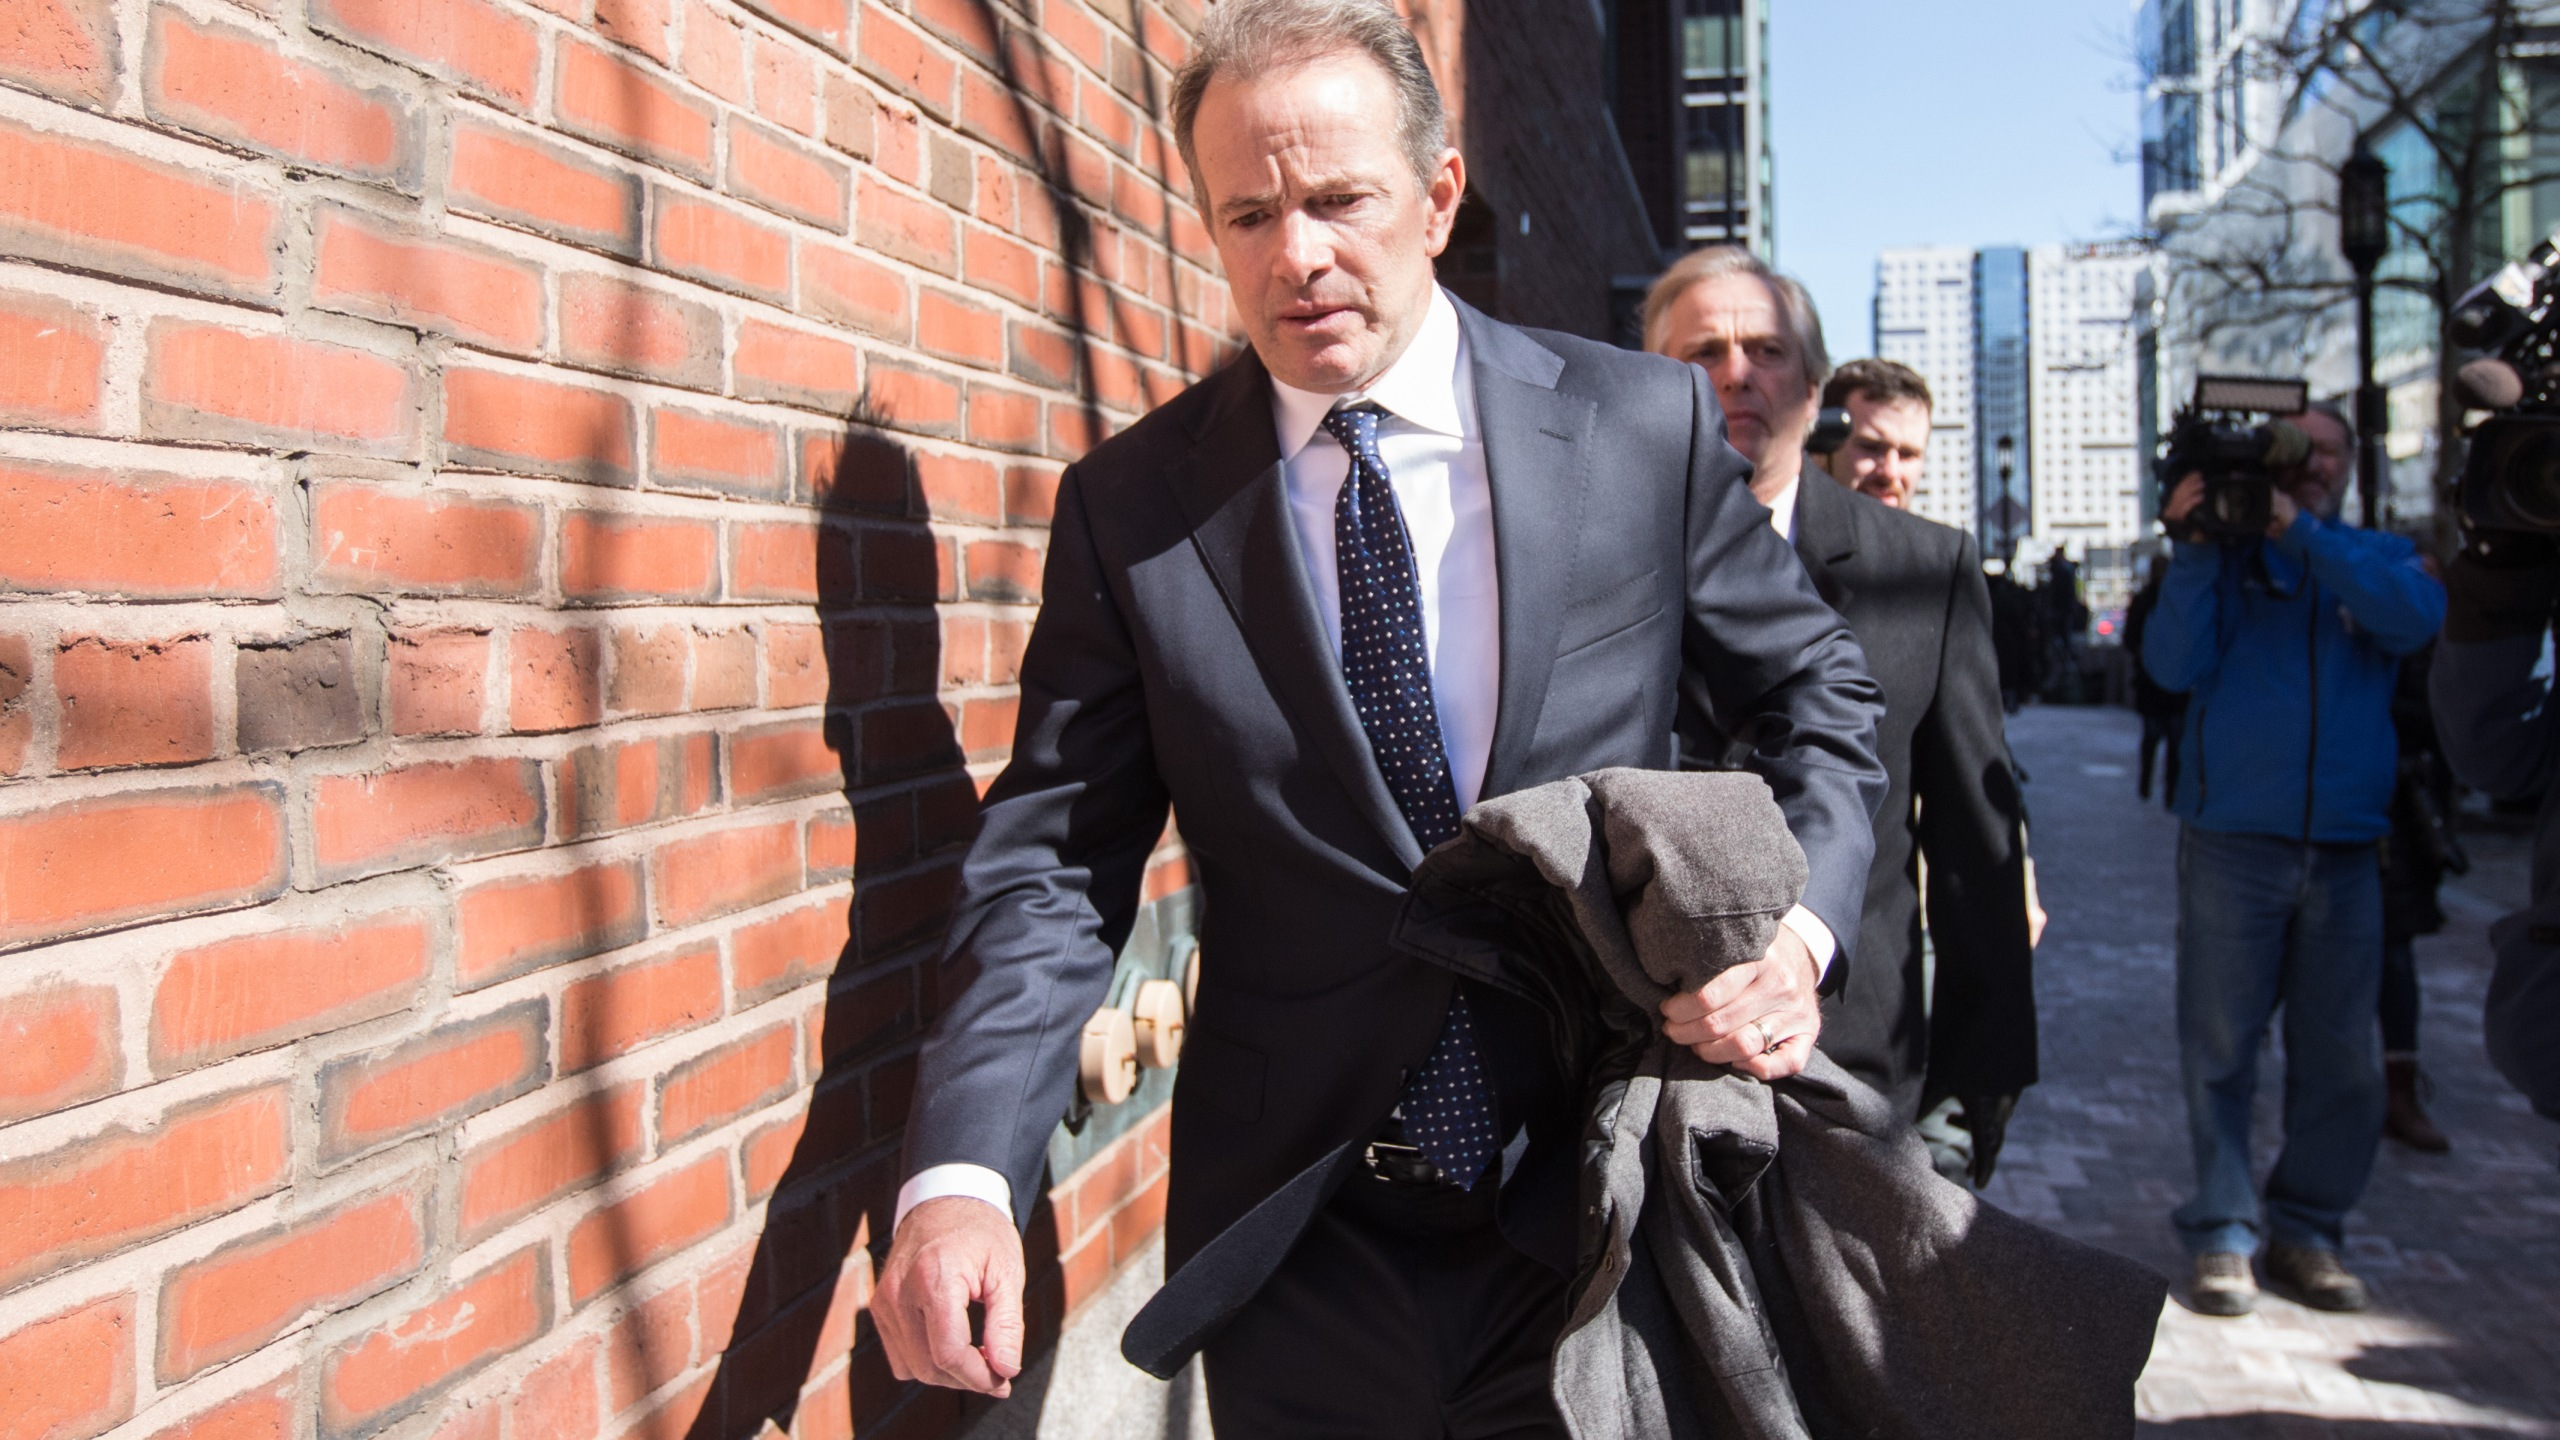 Gordon Ernst, former head coach of the men's and women's tennis teams at Georgetown University, leaves following his arraignment at Boston Federal Court on March 25, 2019 in Boston, Mass. (Credit: Scott Eisen/Getty Images)